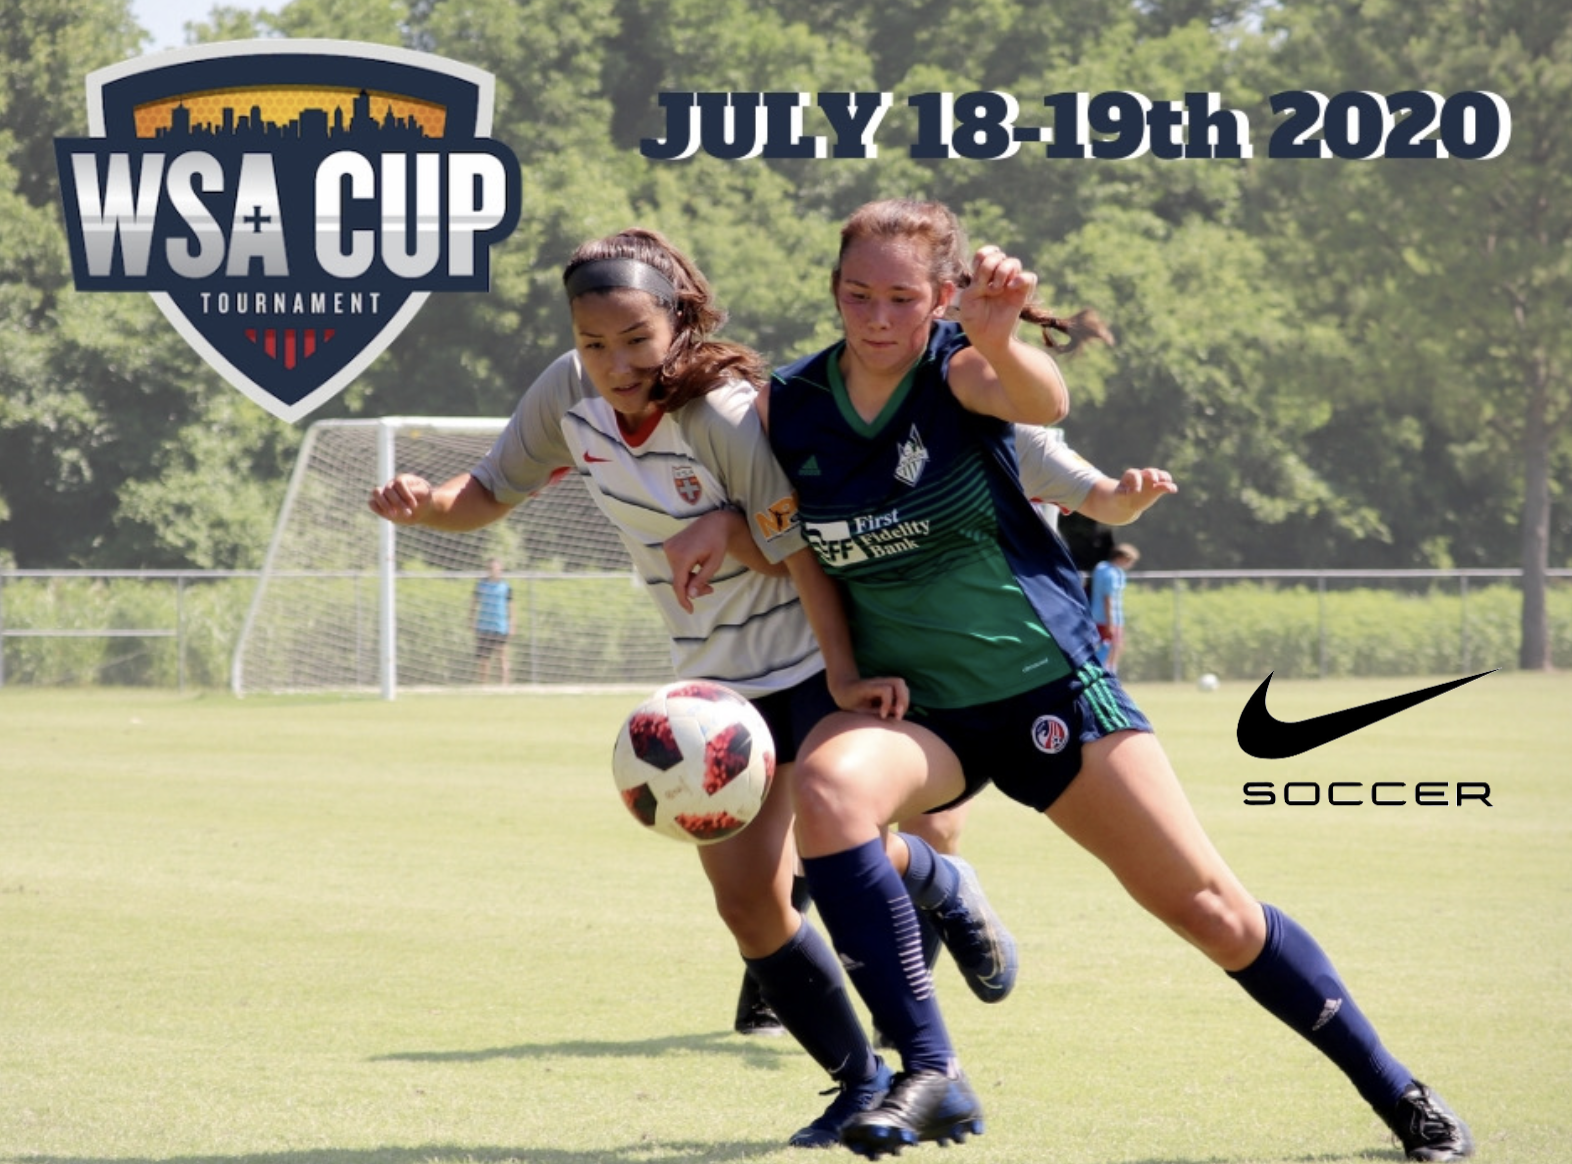 WSA CUP 2020 DAY 1, DAY 2, DAY 3 HIGHLIGHTS!